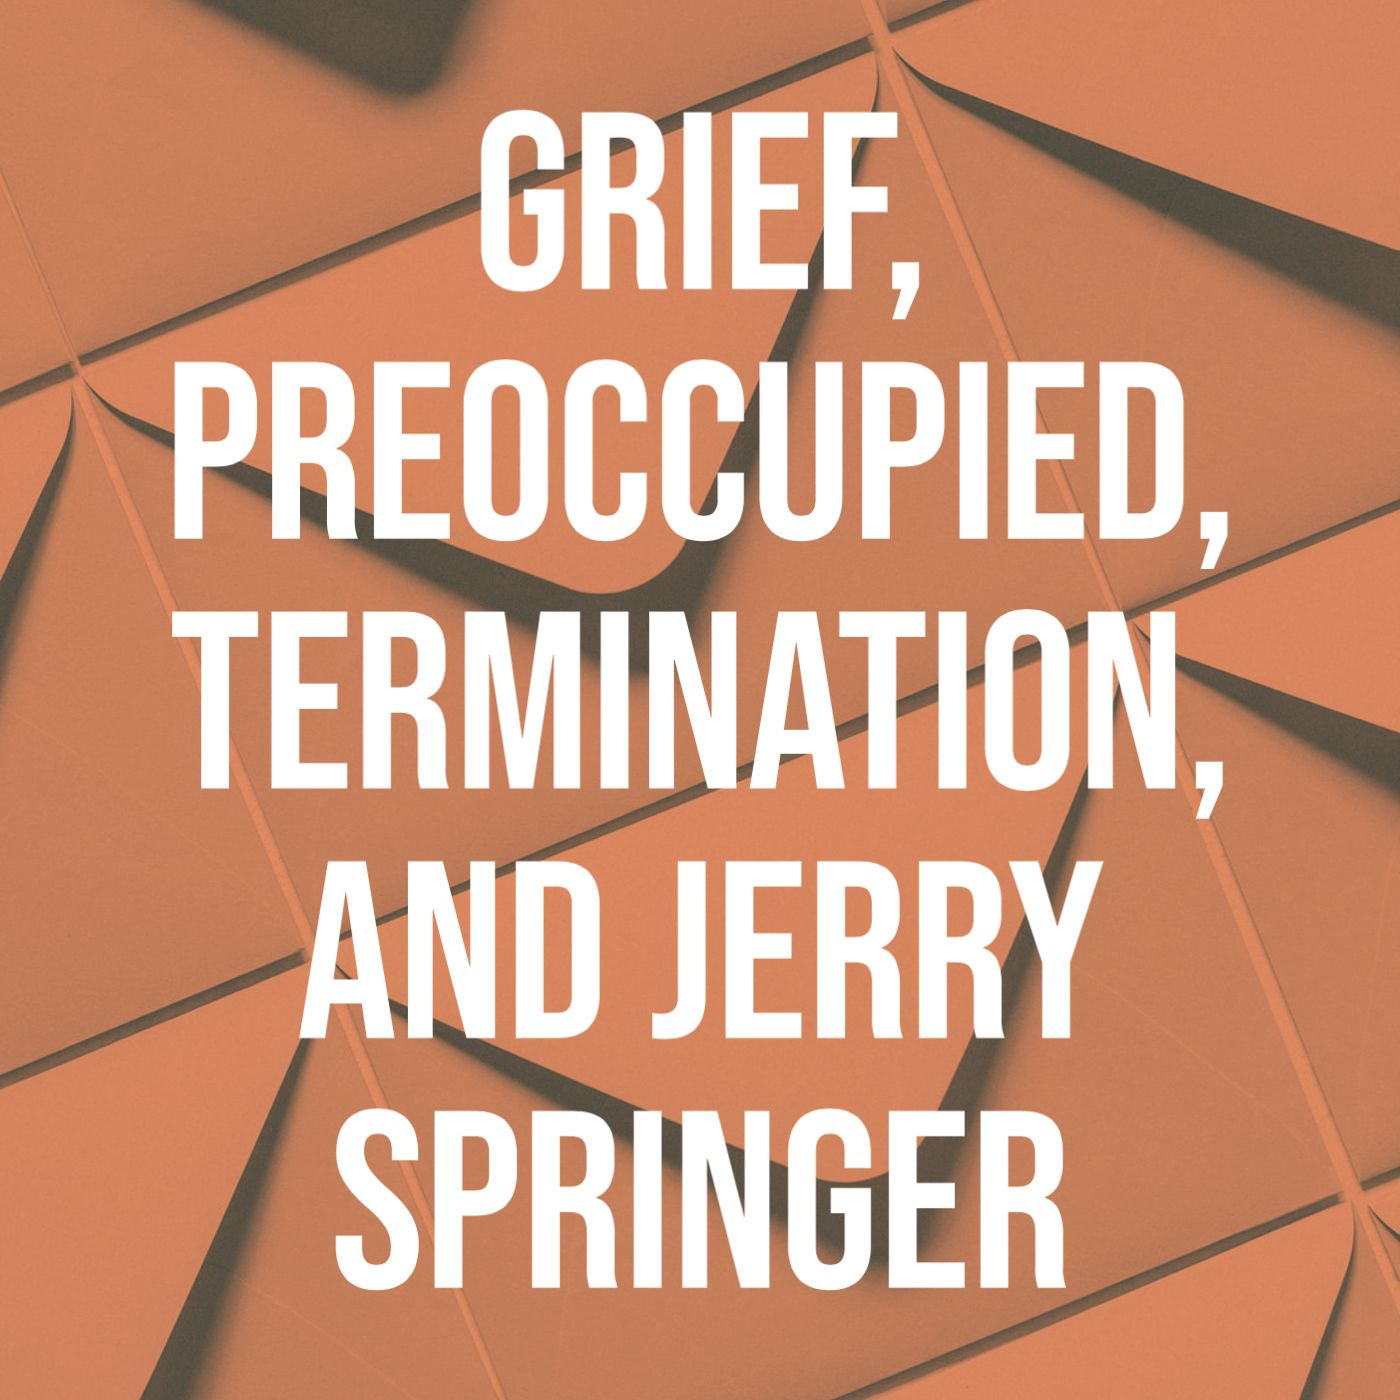 Grief, Preoccupied, Termination, and Jerry Springer